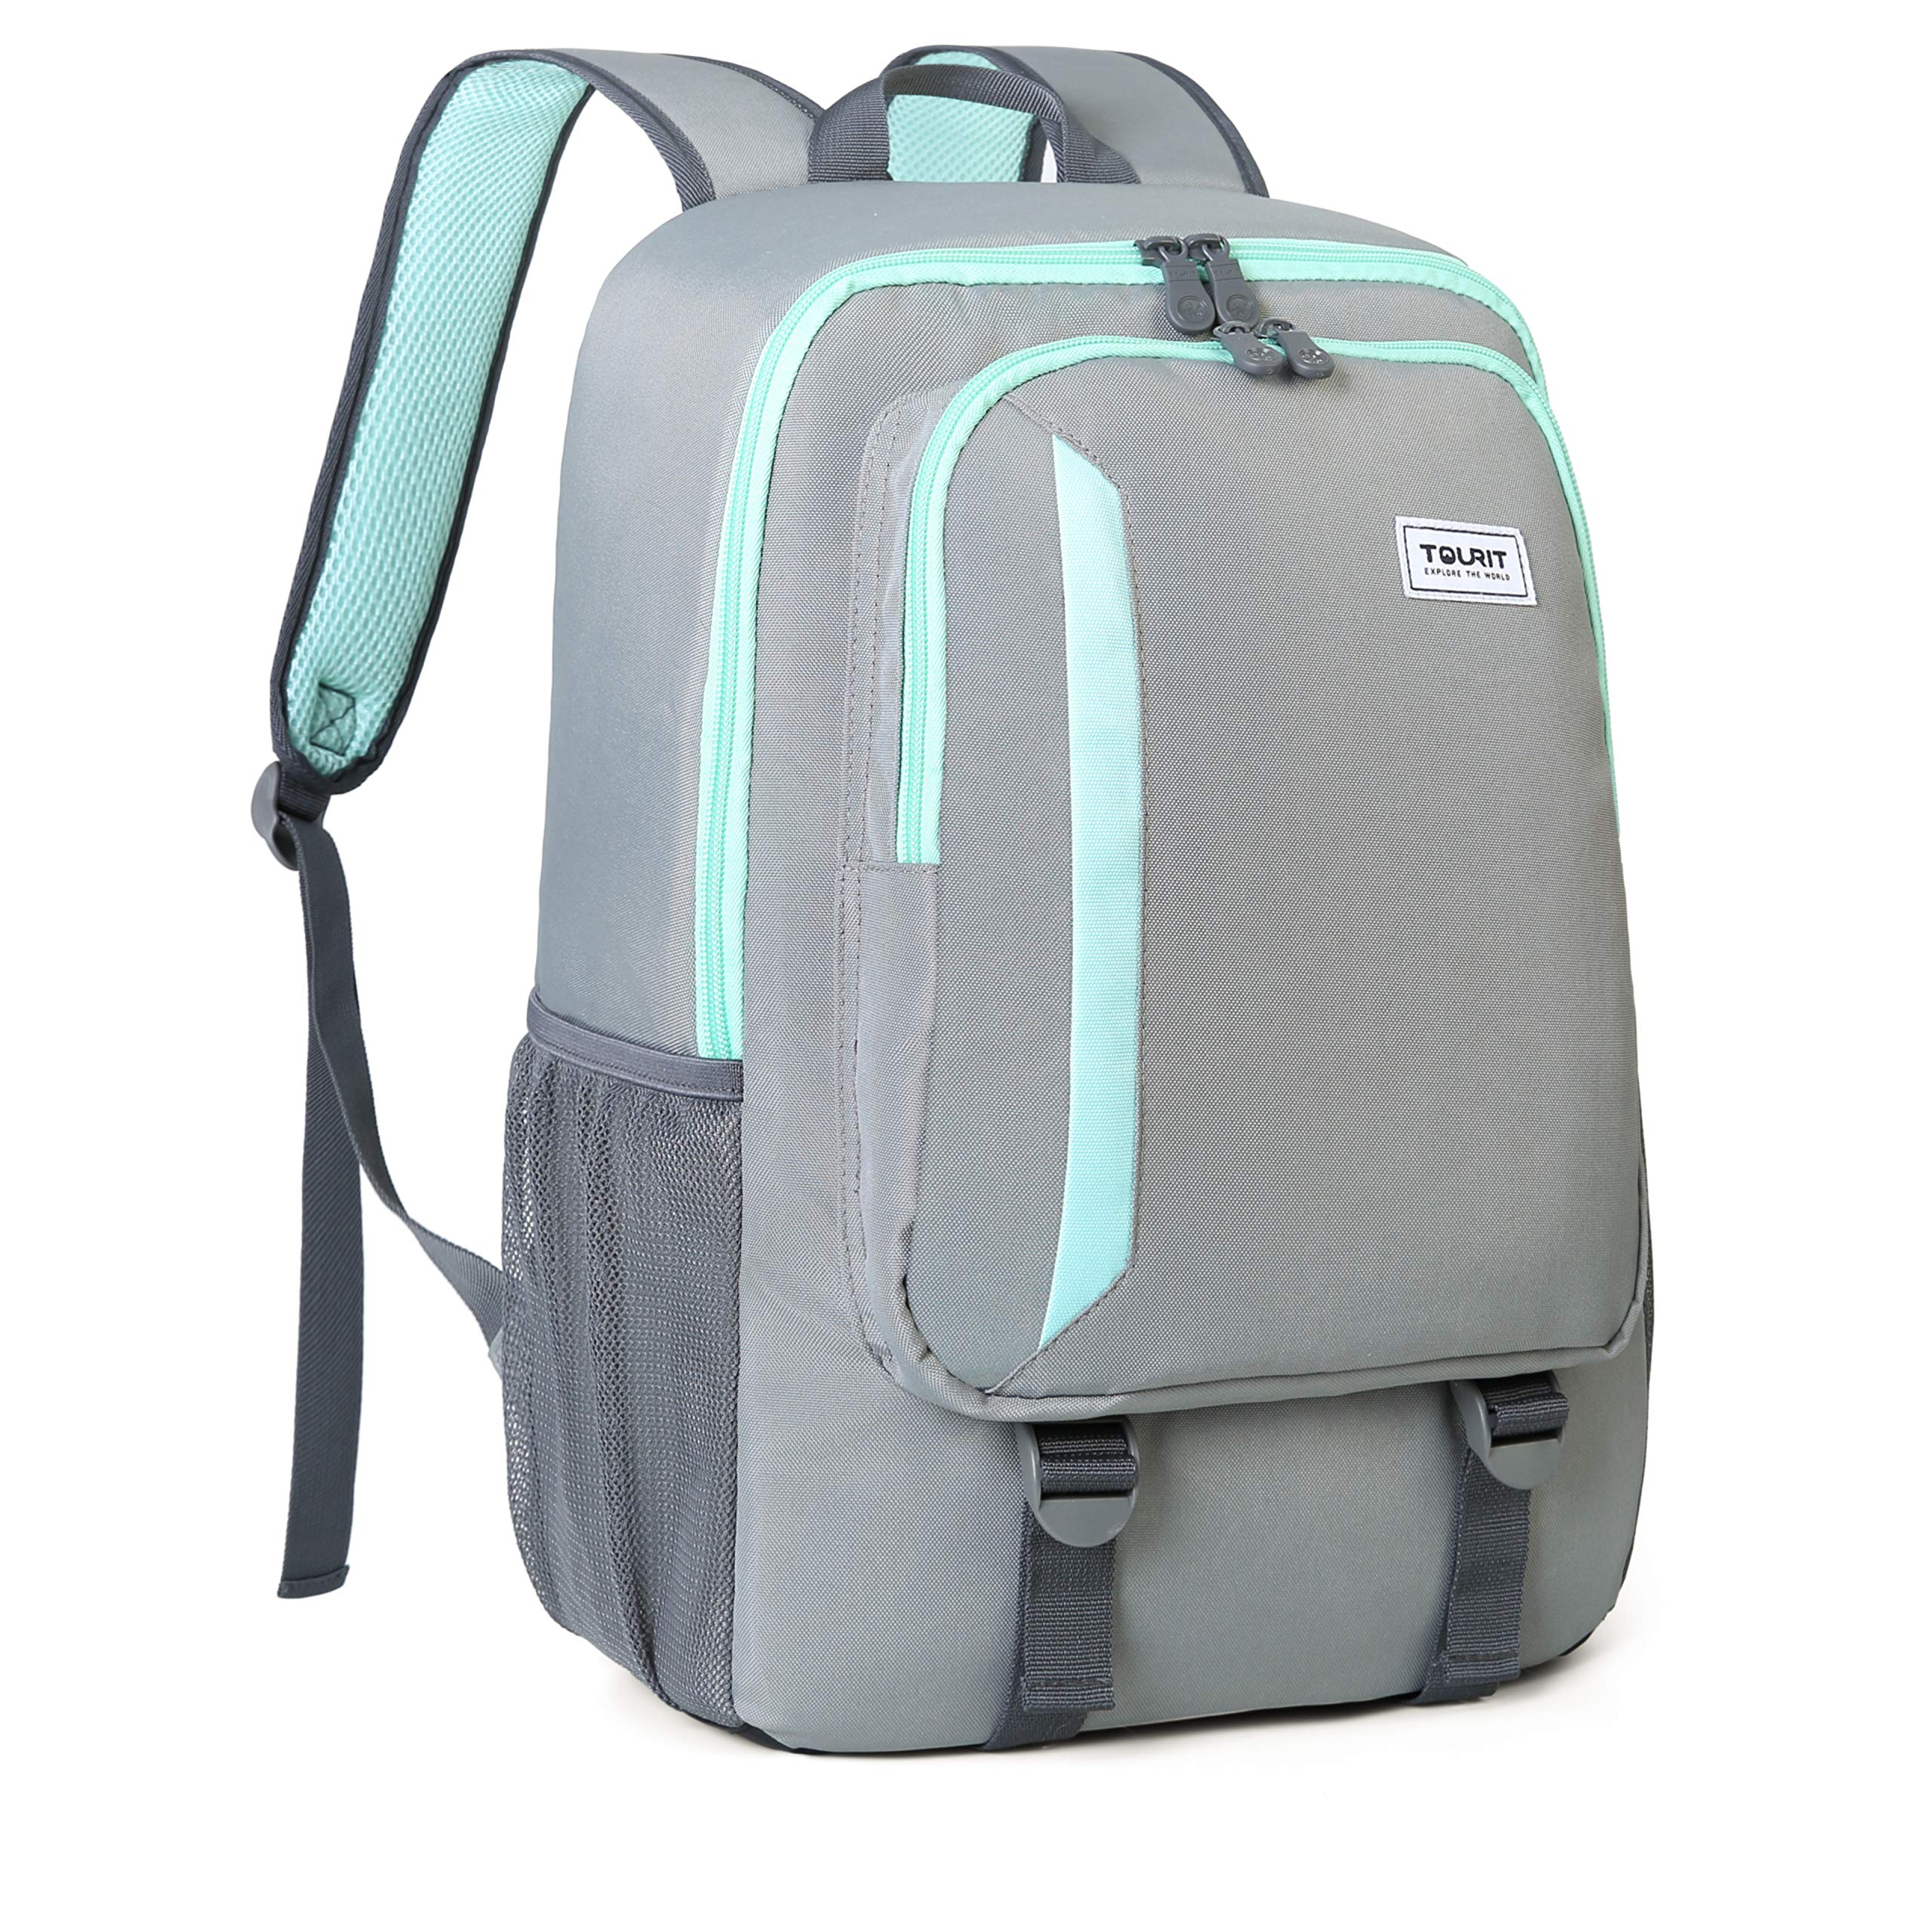 TOURIT Cooler Backpack Leakproof Insulated Backpack 28L Lunch Backpack with Cooler for Men Women to Work, Beach Trip, Day Trip, Hiking